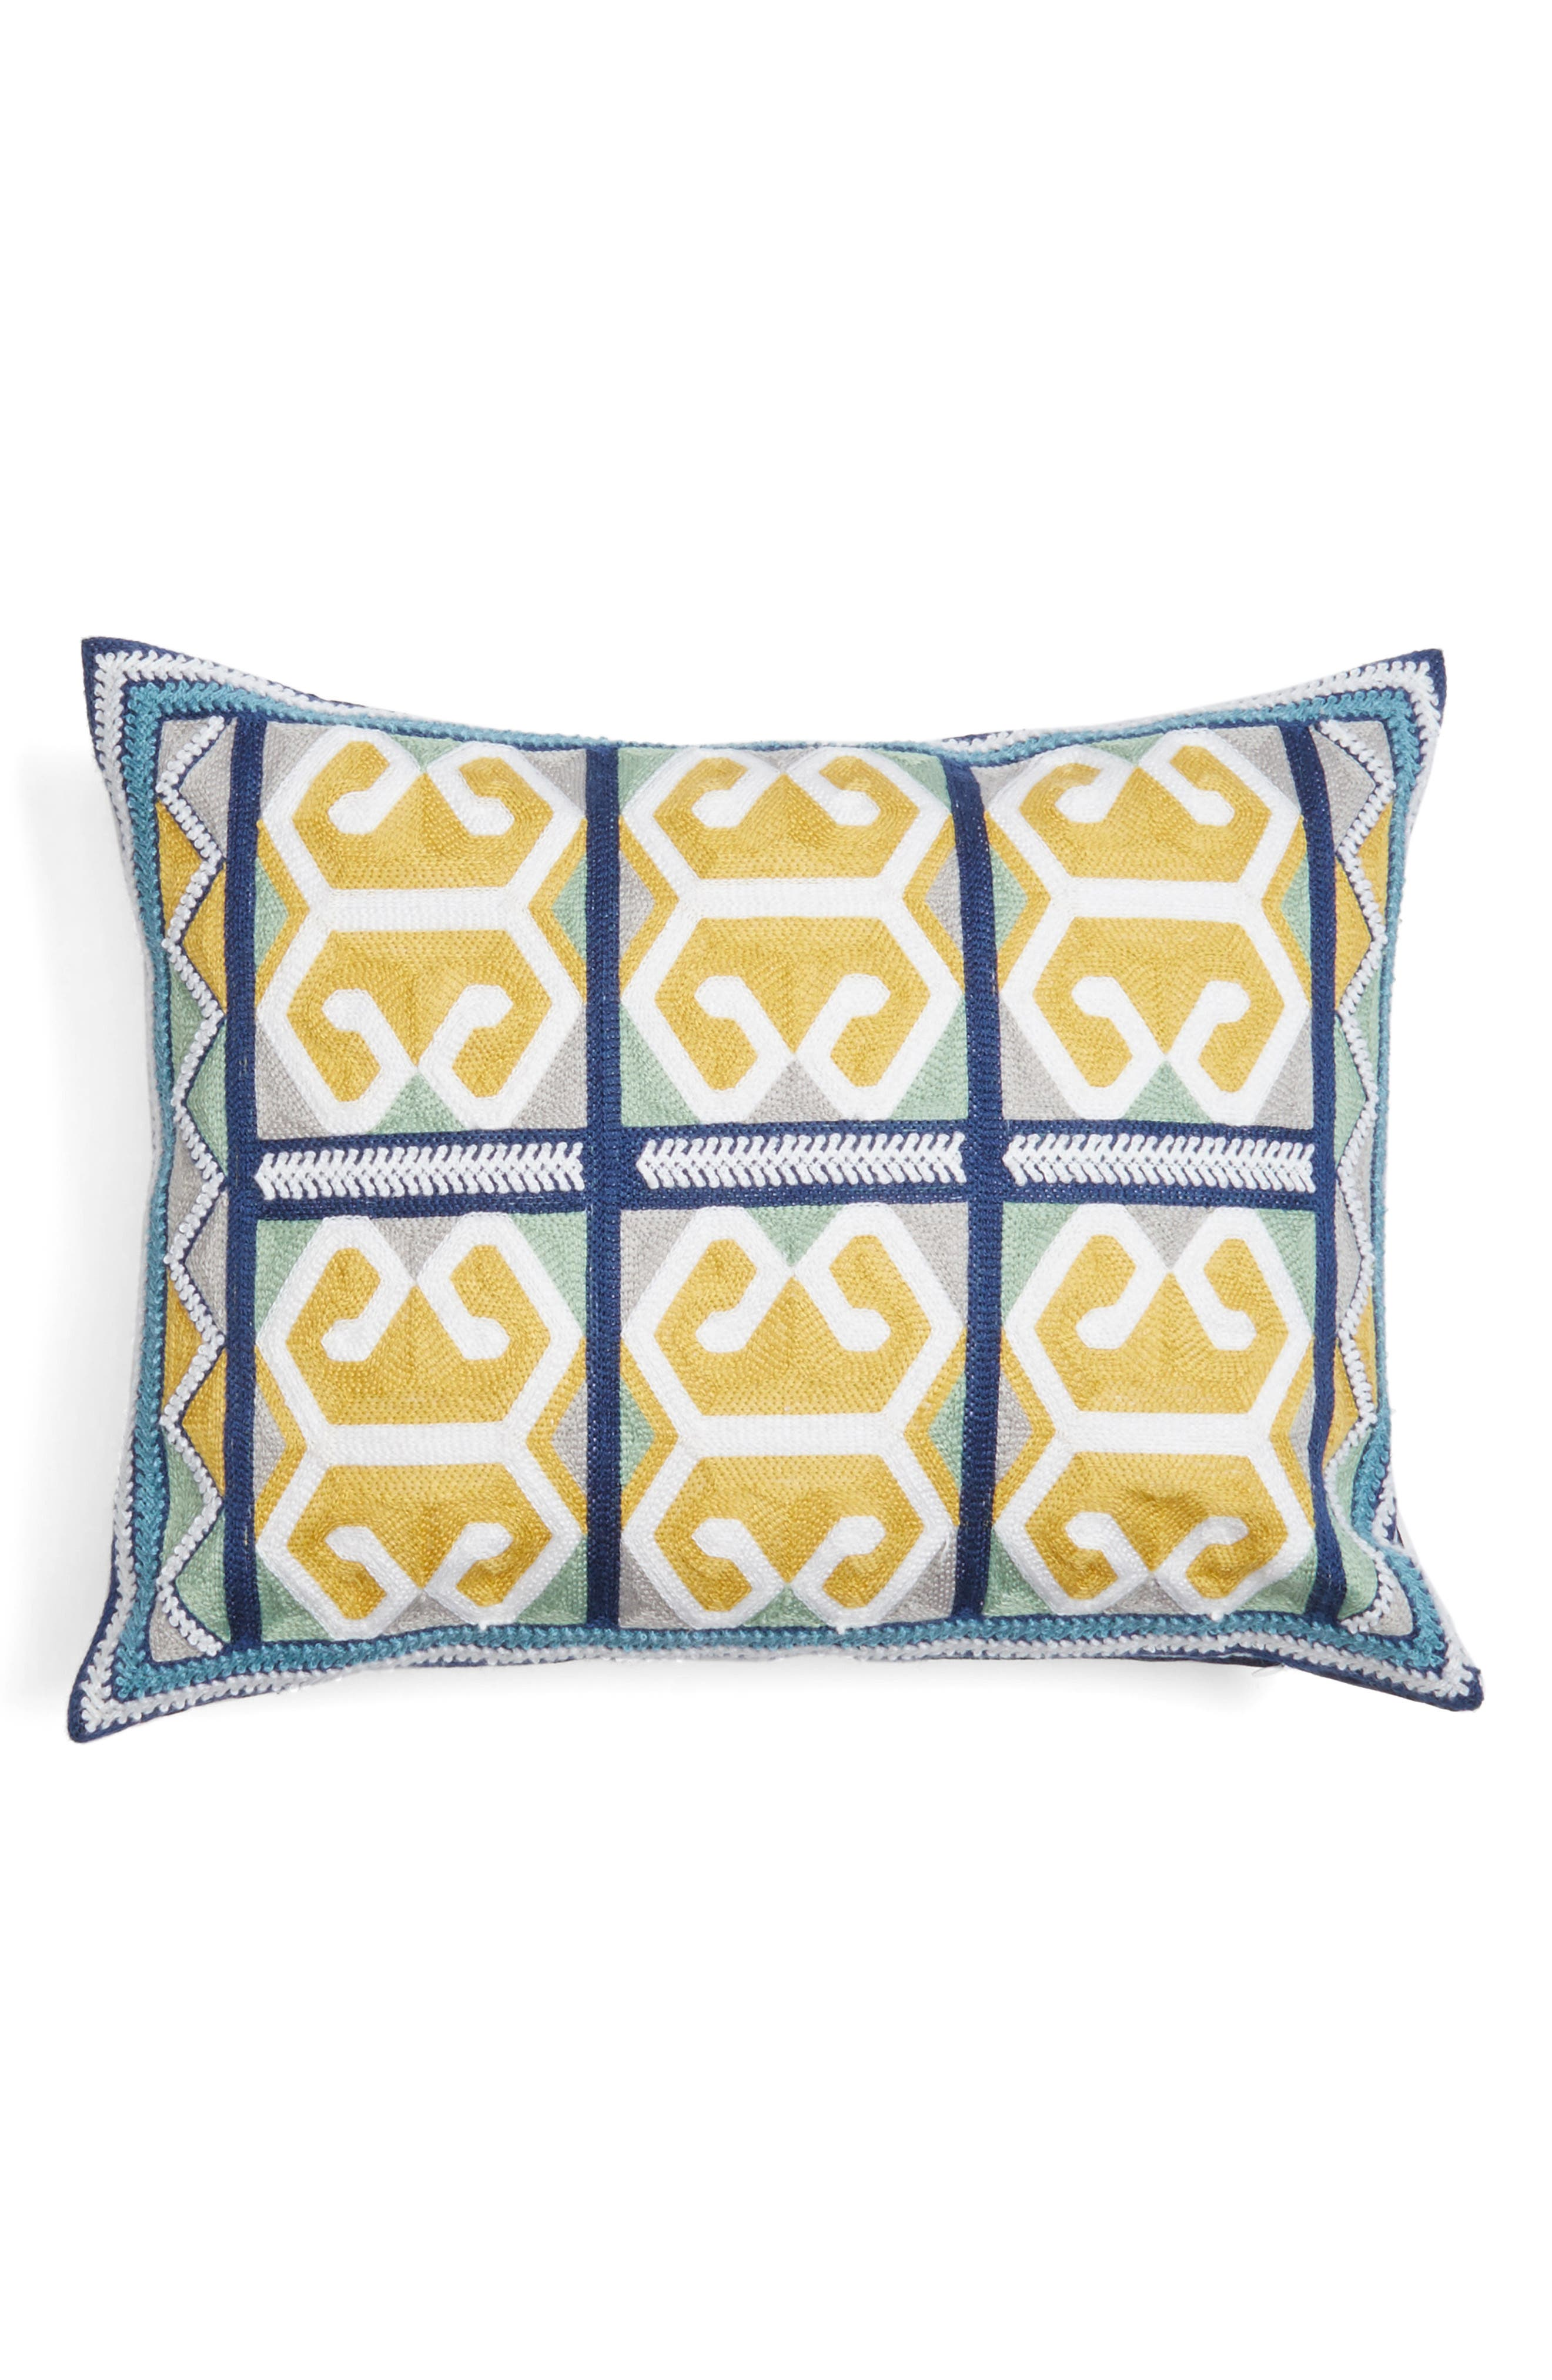 Levtex Amalfi Coast Pillow